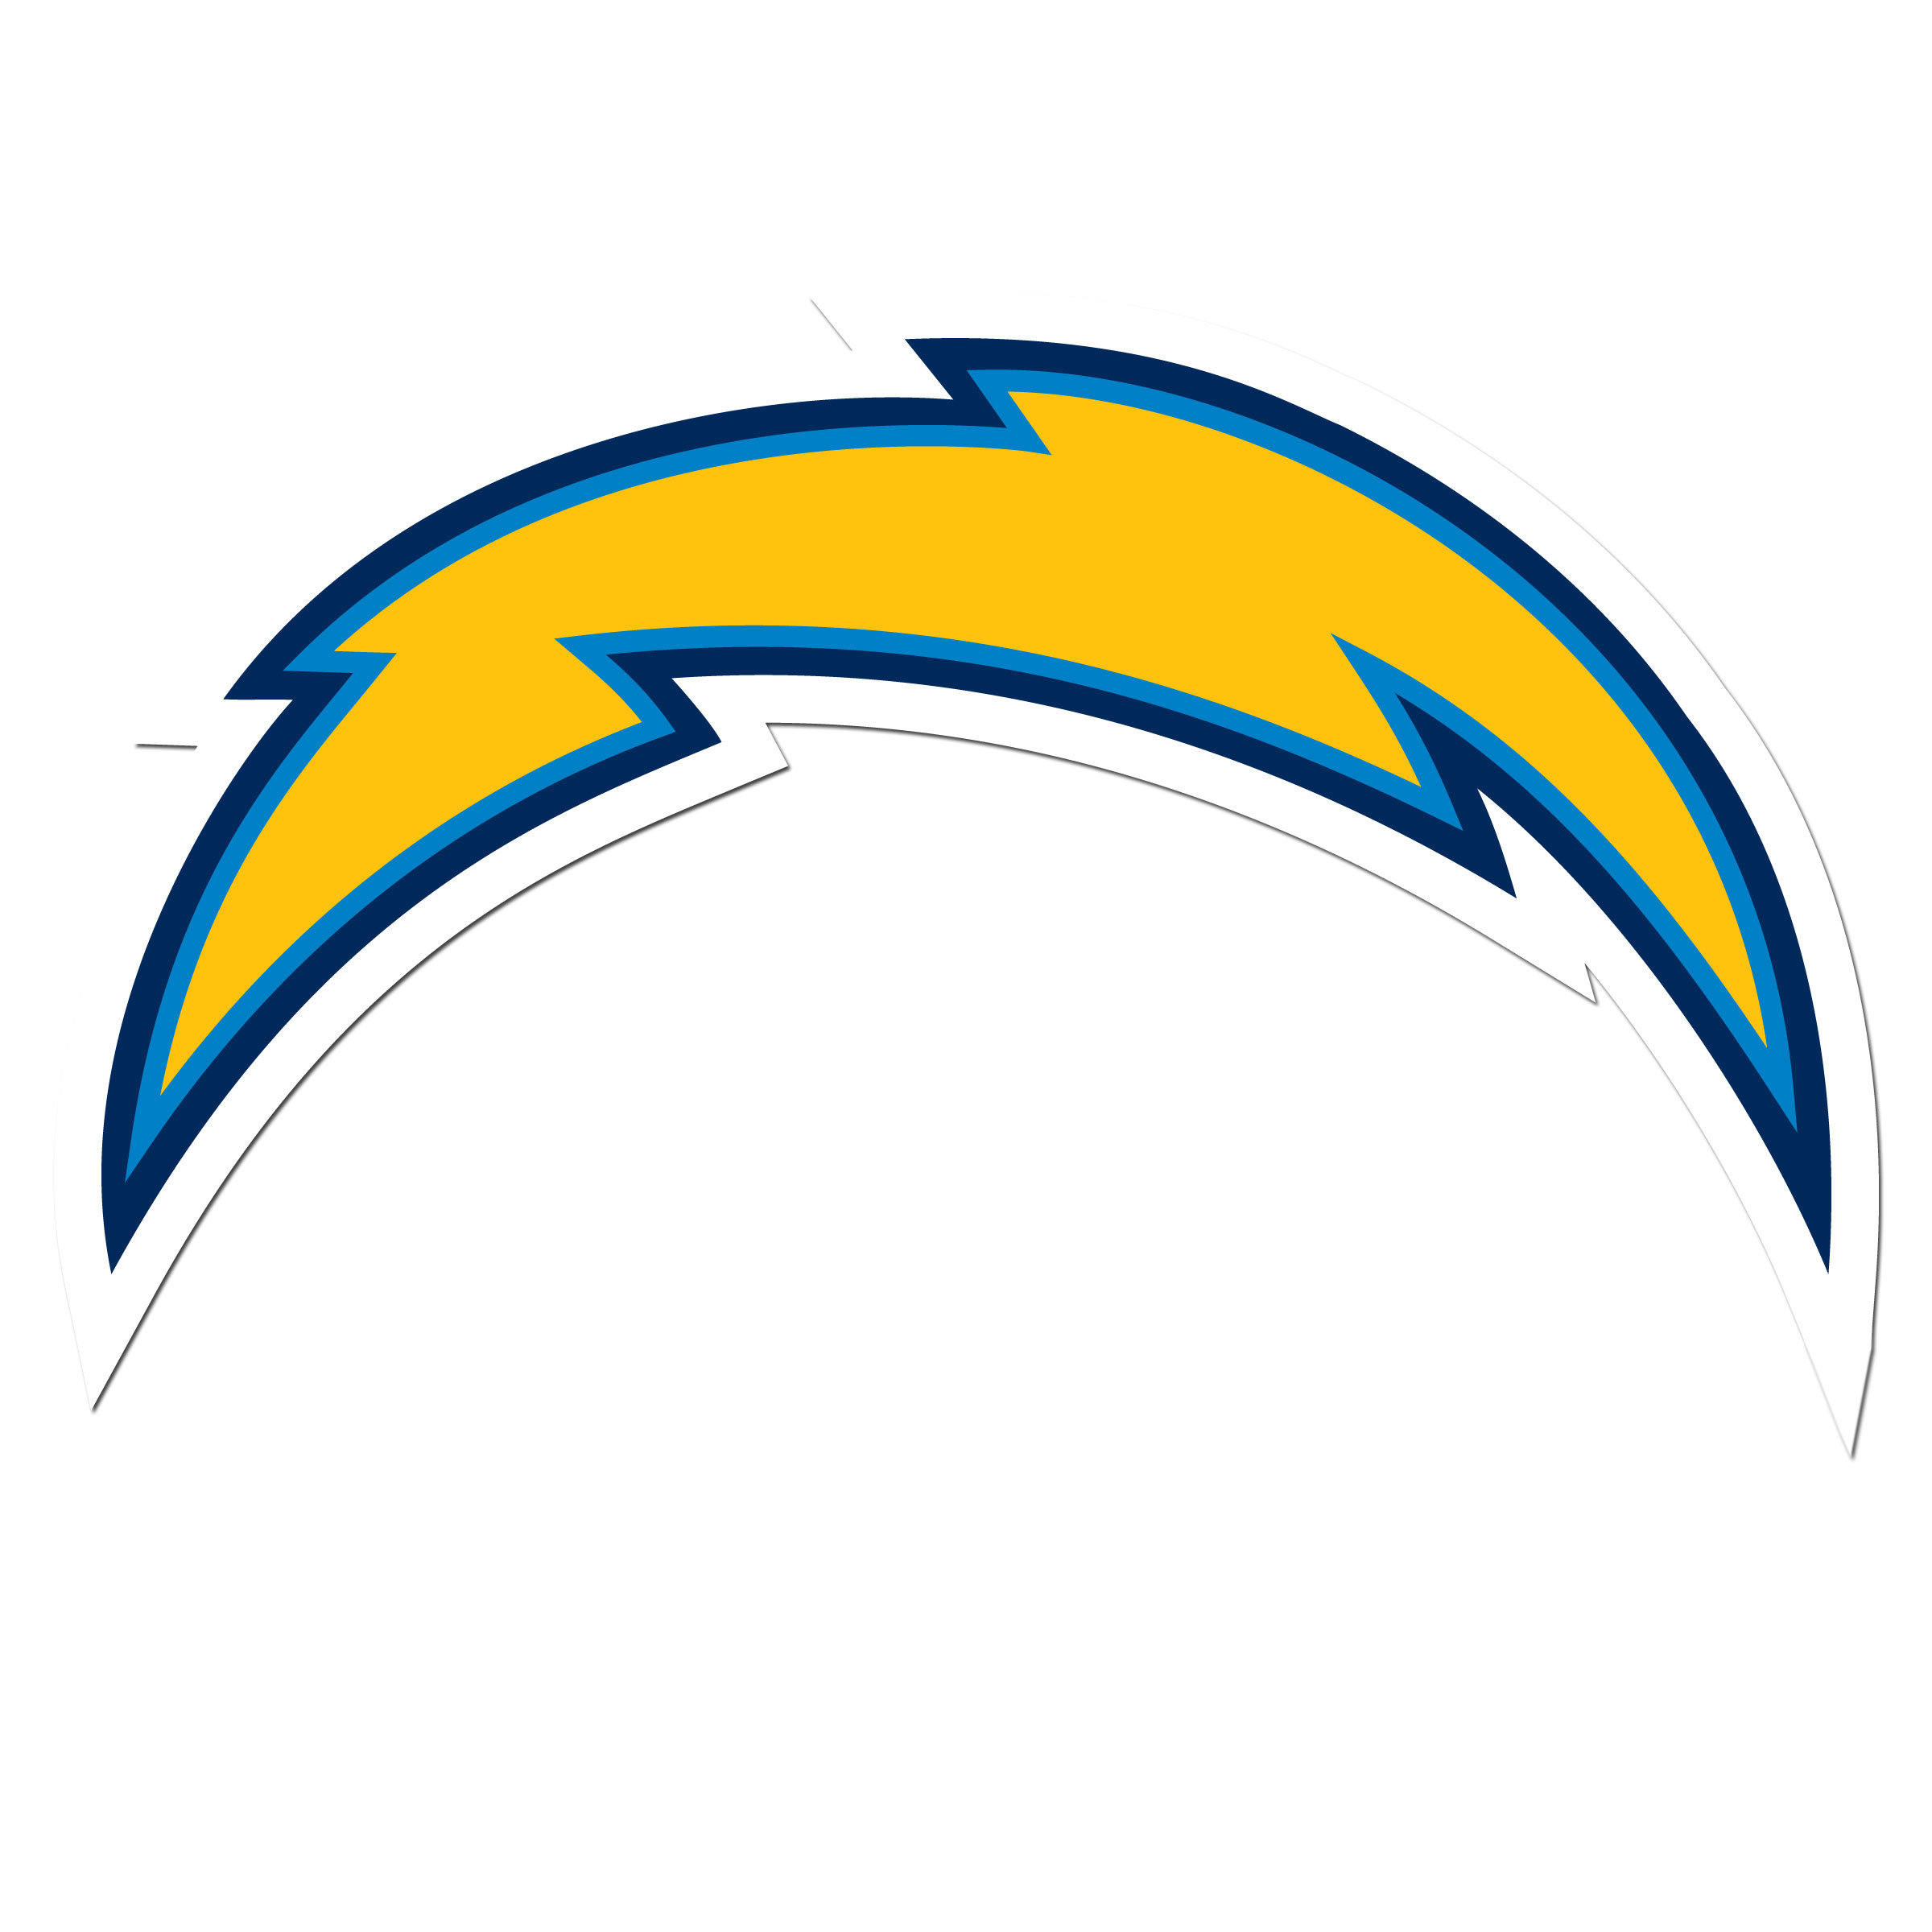 Los Angeles Chargers 8 inch Auto Decal - This bold, 8 inch Los Angeles Chargers is a great way to show off your team pride! The low tack vinyl decal is easily positioned and adjusted to make sure you get that logo in just the right spot on your vehicle. Designed to be used on the outside of the window.